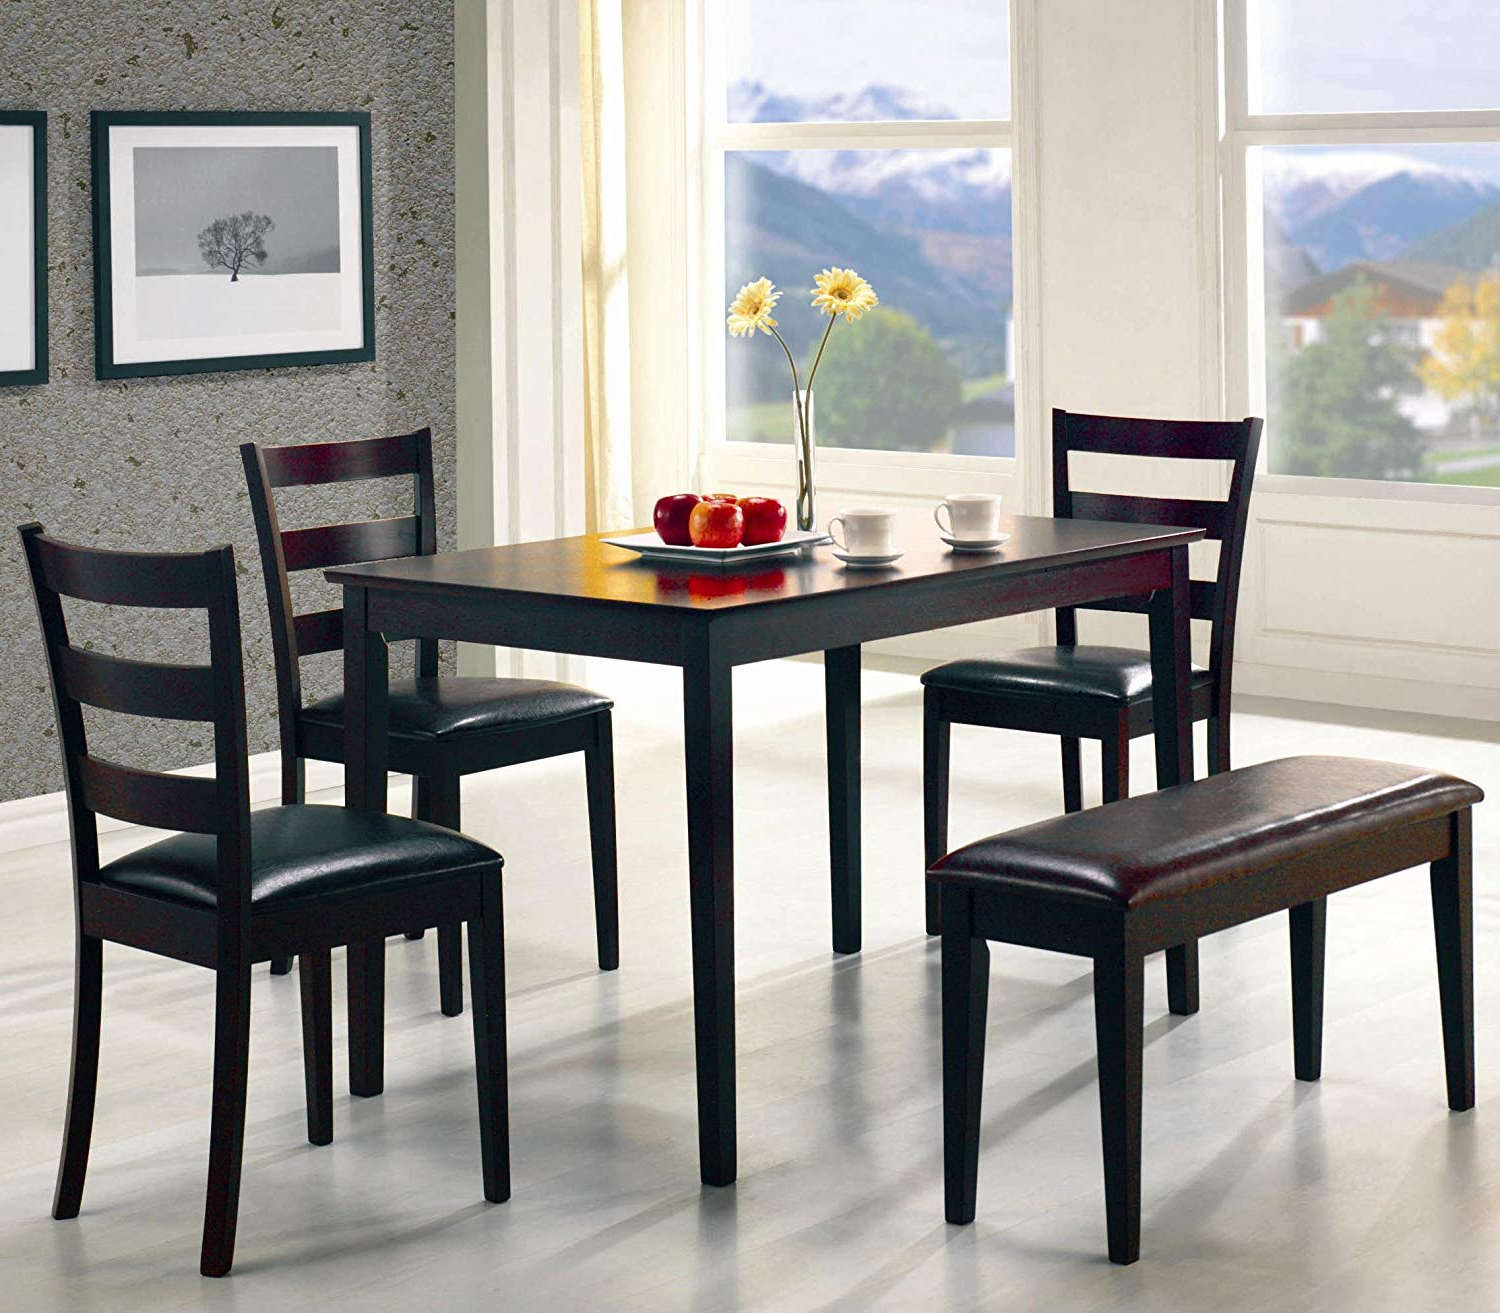 5pc Dining Dinette Table Chairs & Bench Set Cappuccino Finishhome Life Throughout Recent Cappuccino Finish Wood Classic Casual Dining Tables (Gallery 28 of 30)